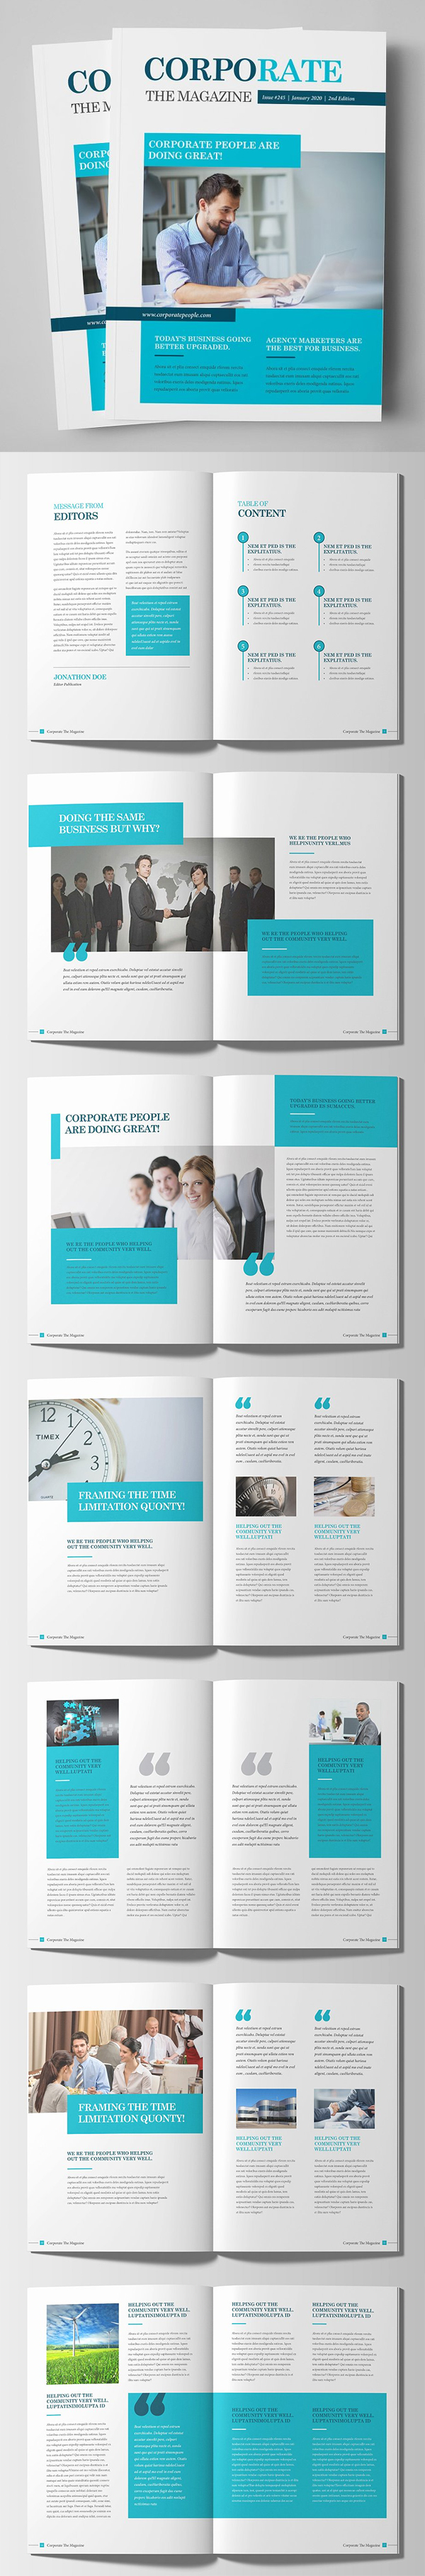 Corporate Business Magazine Brochure Template